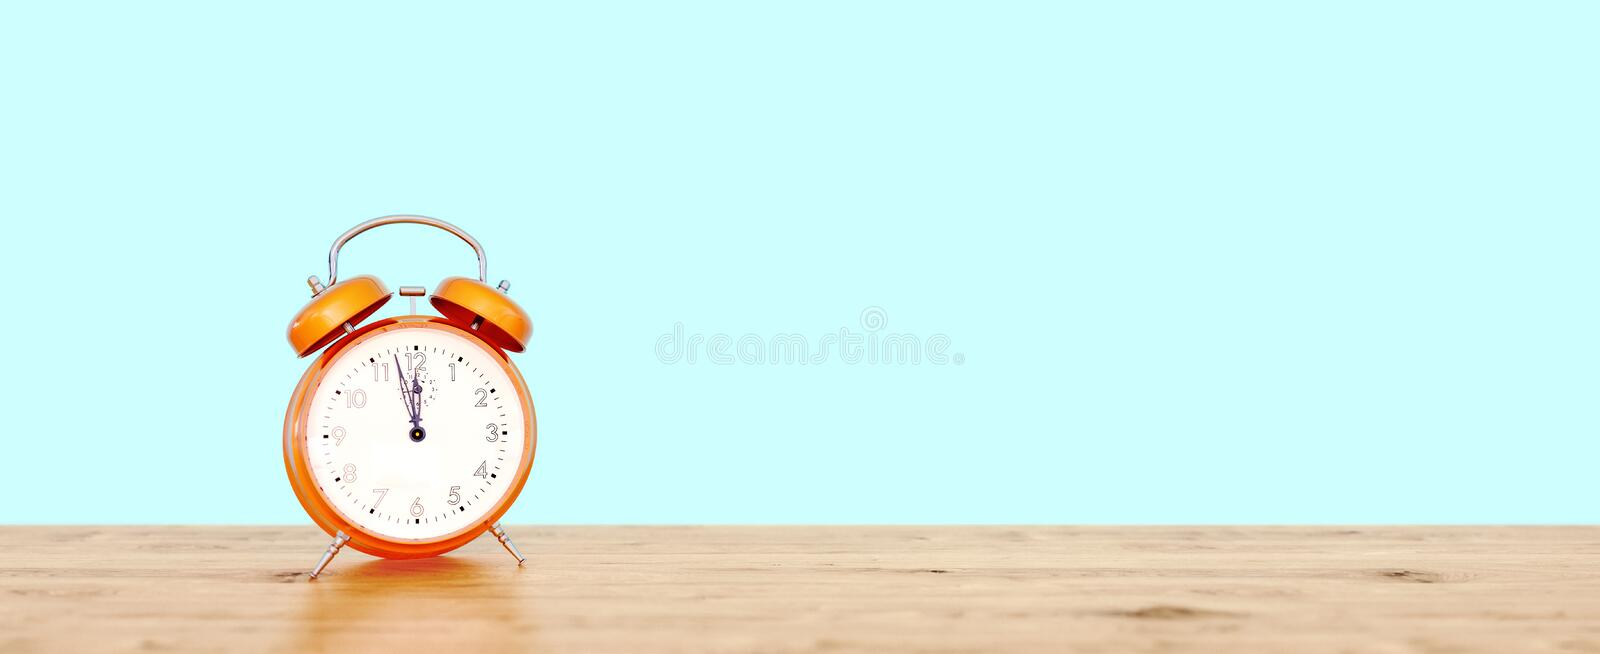 Orange vintage clock on teal background showing nearly 12, last minute concept. 3D Rendering stock illustration